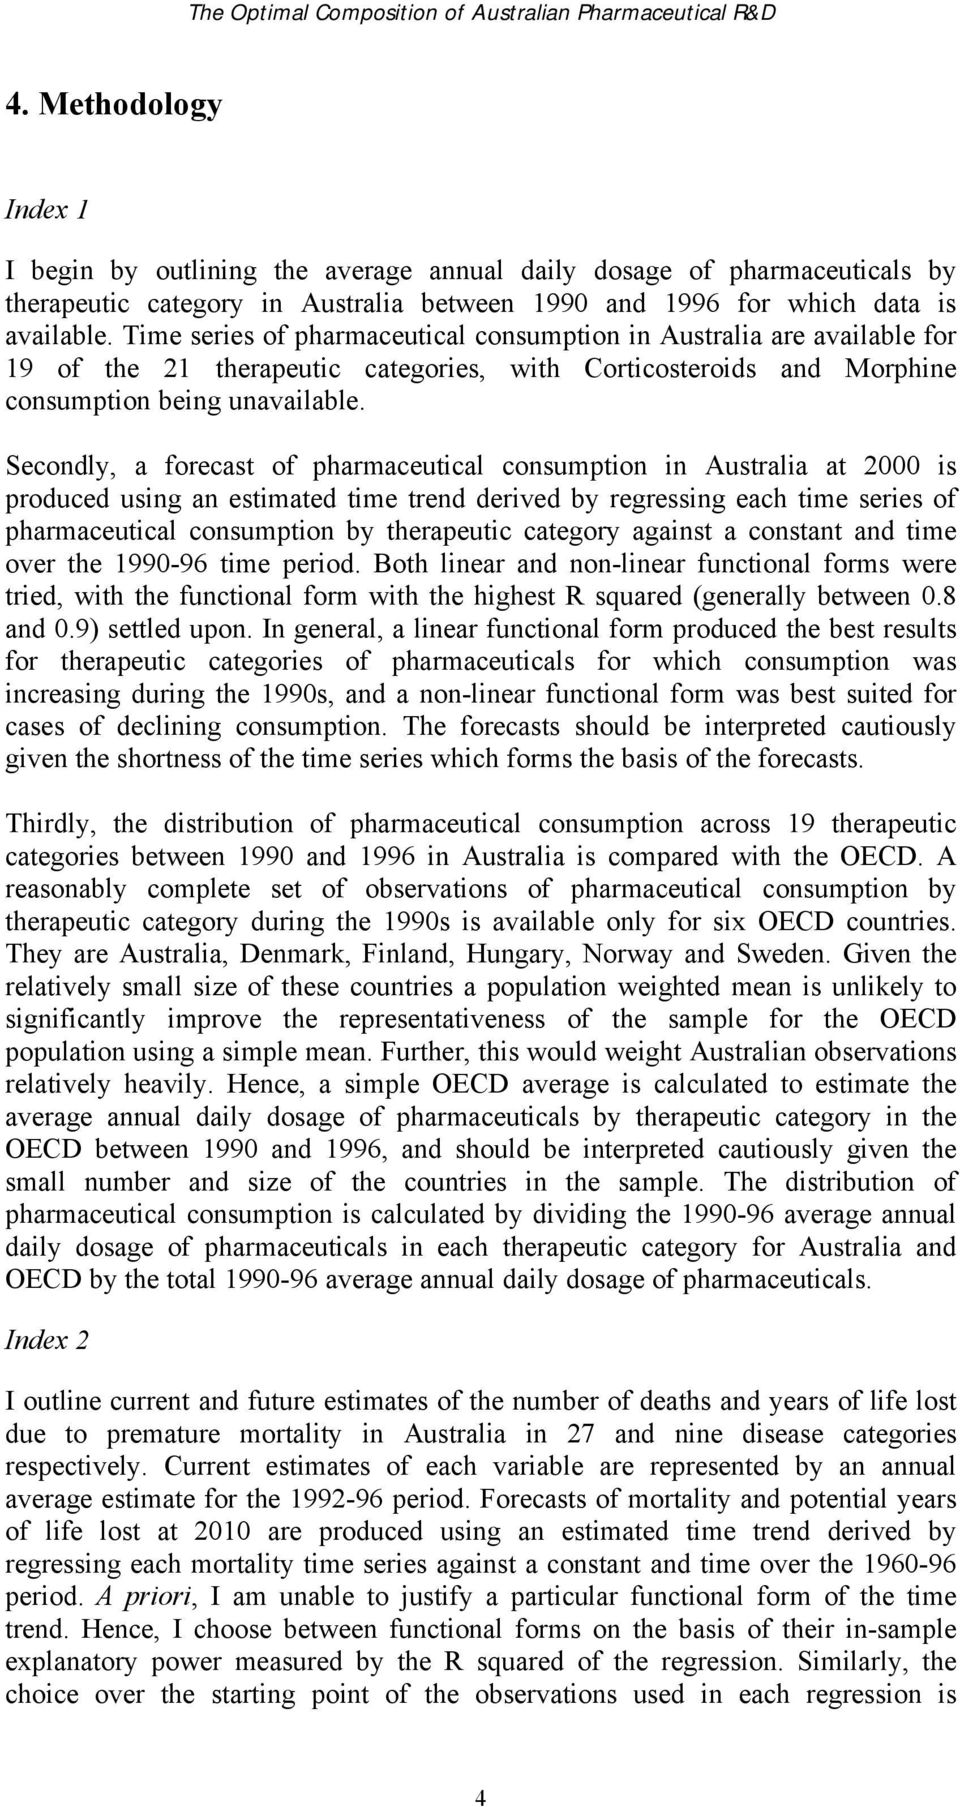 Secondly, a forecast of pharmaceutical consumption in Australia at 2000 is produced using an estimated time trend derived by regressing each time series of pharmaceutical consumption by therapeutic